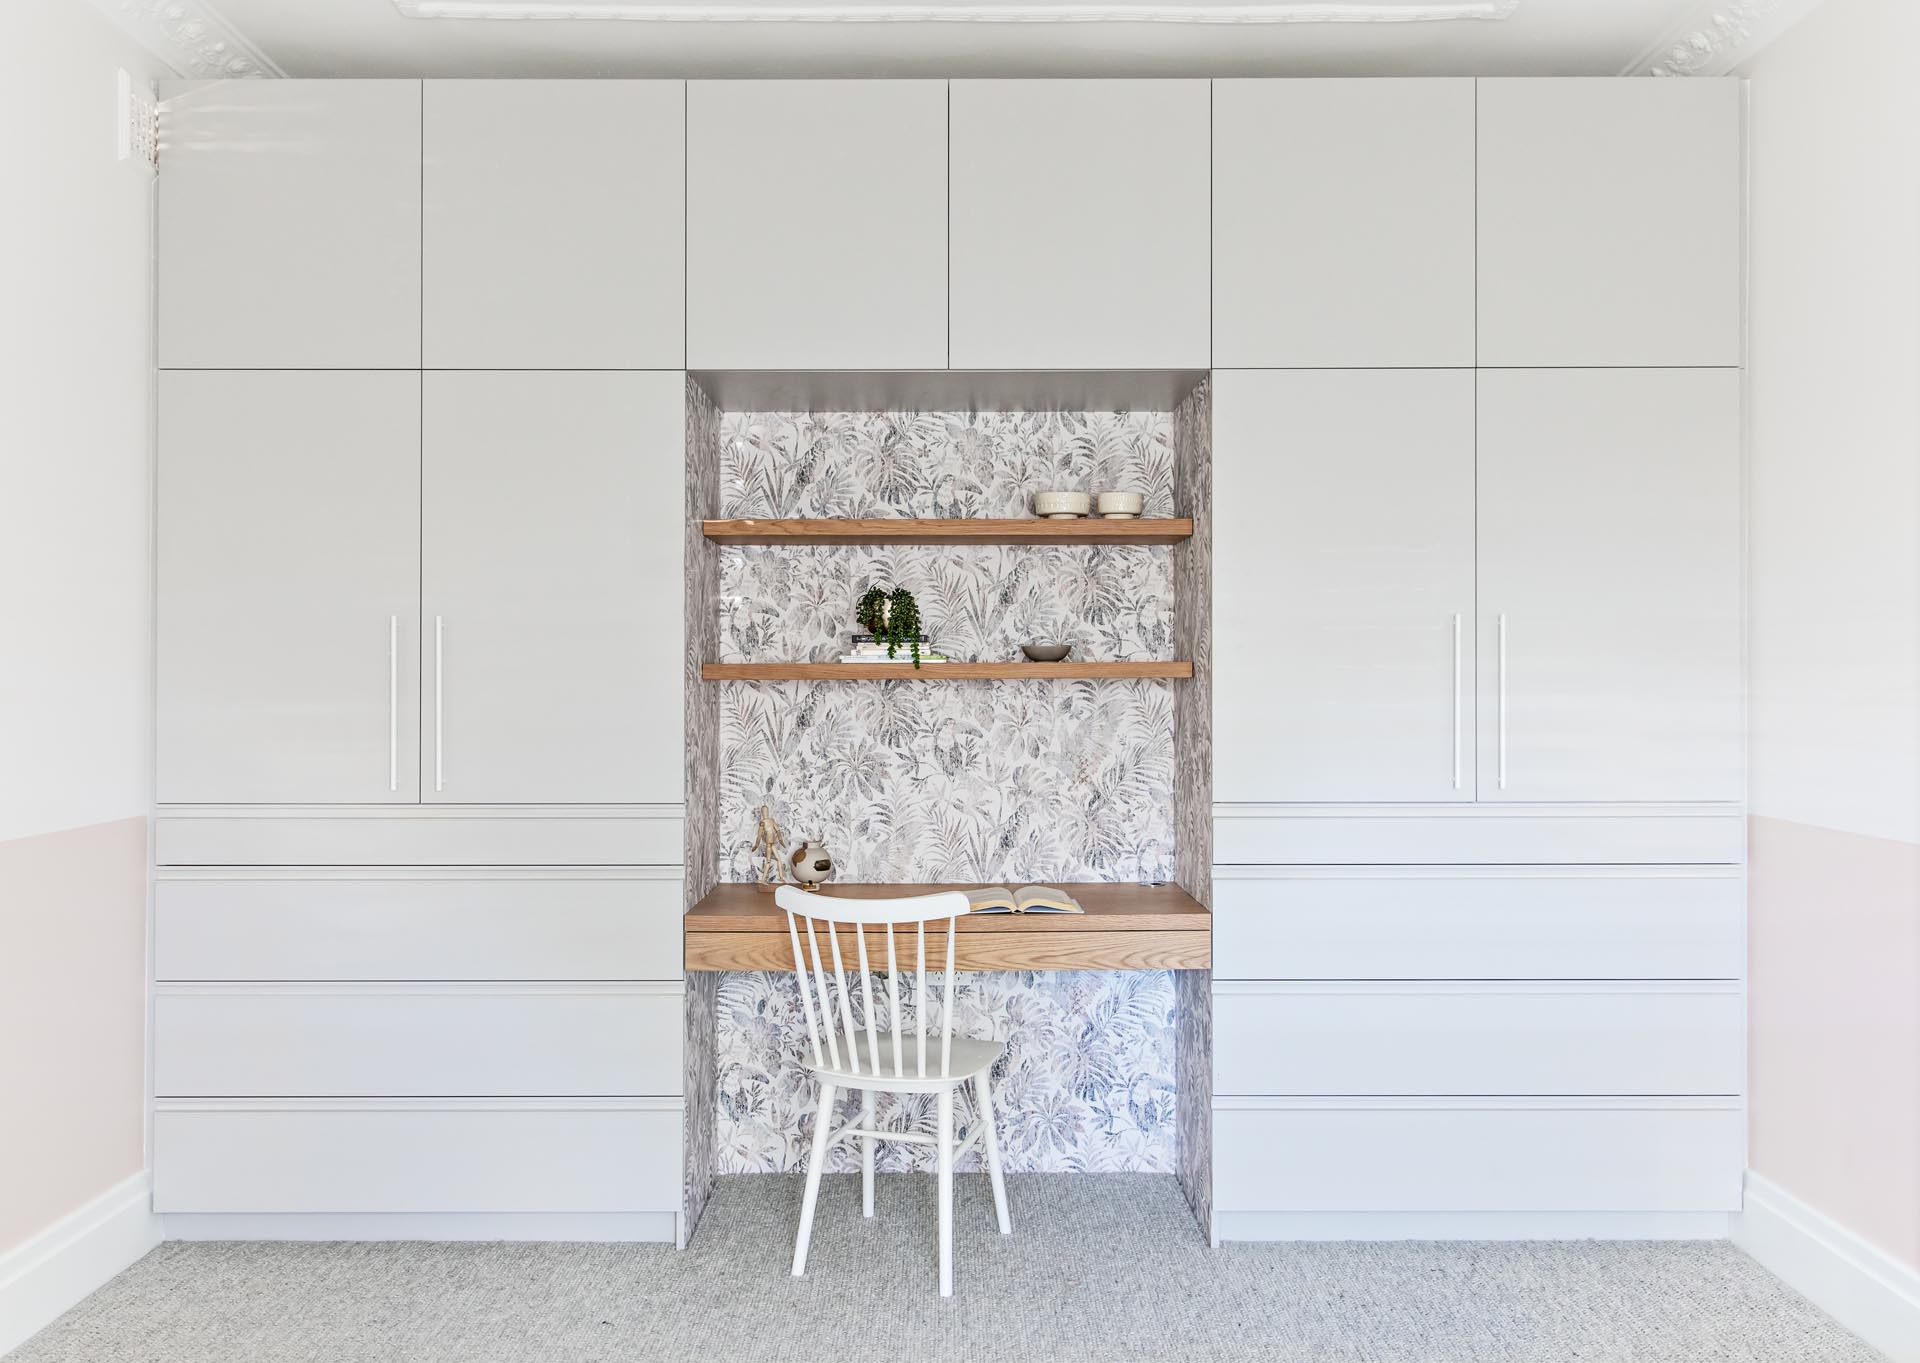 A bedroom with a wall of cabinets and drawers that surround a built-in wood desk and shelving. The desk nook is also lined with a botanical wallpaper.